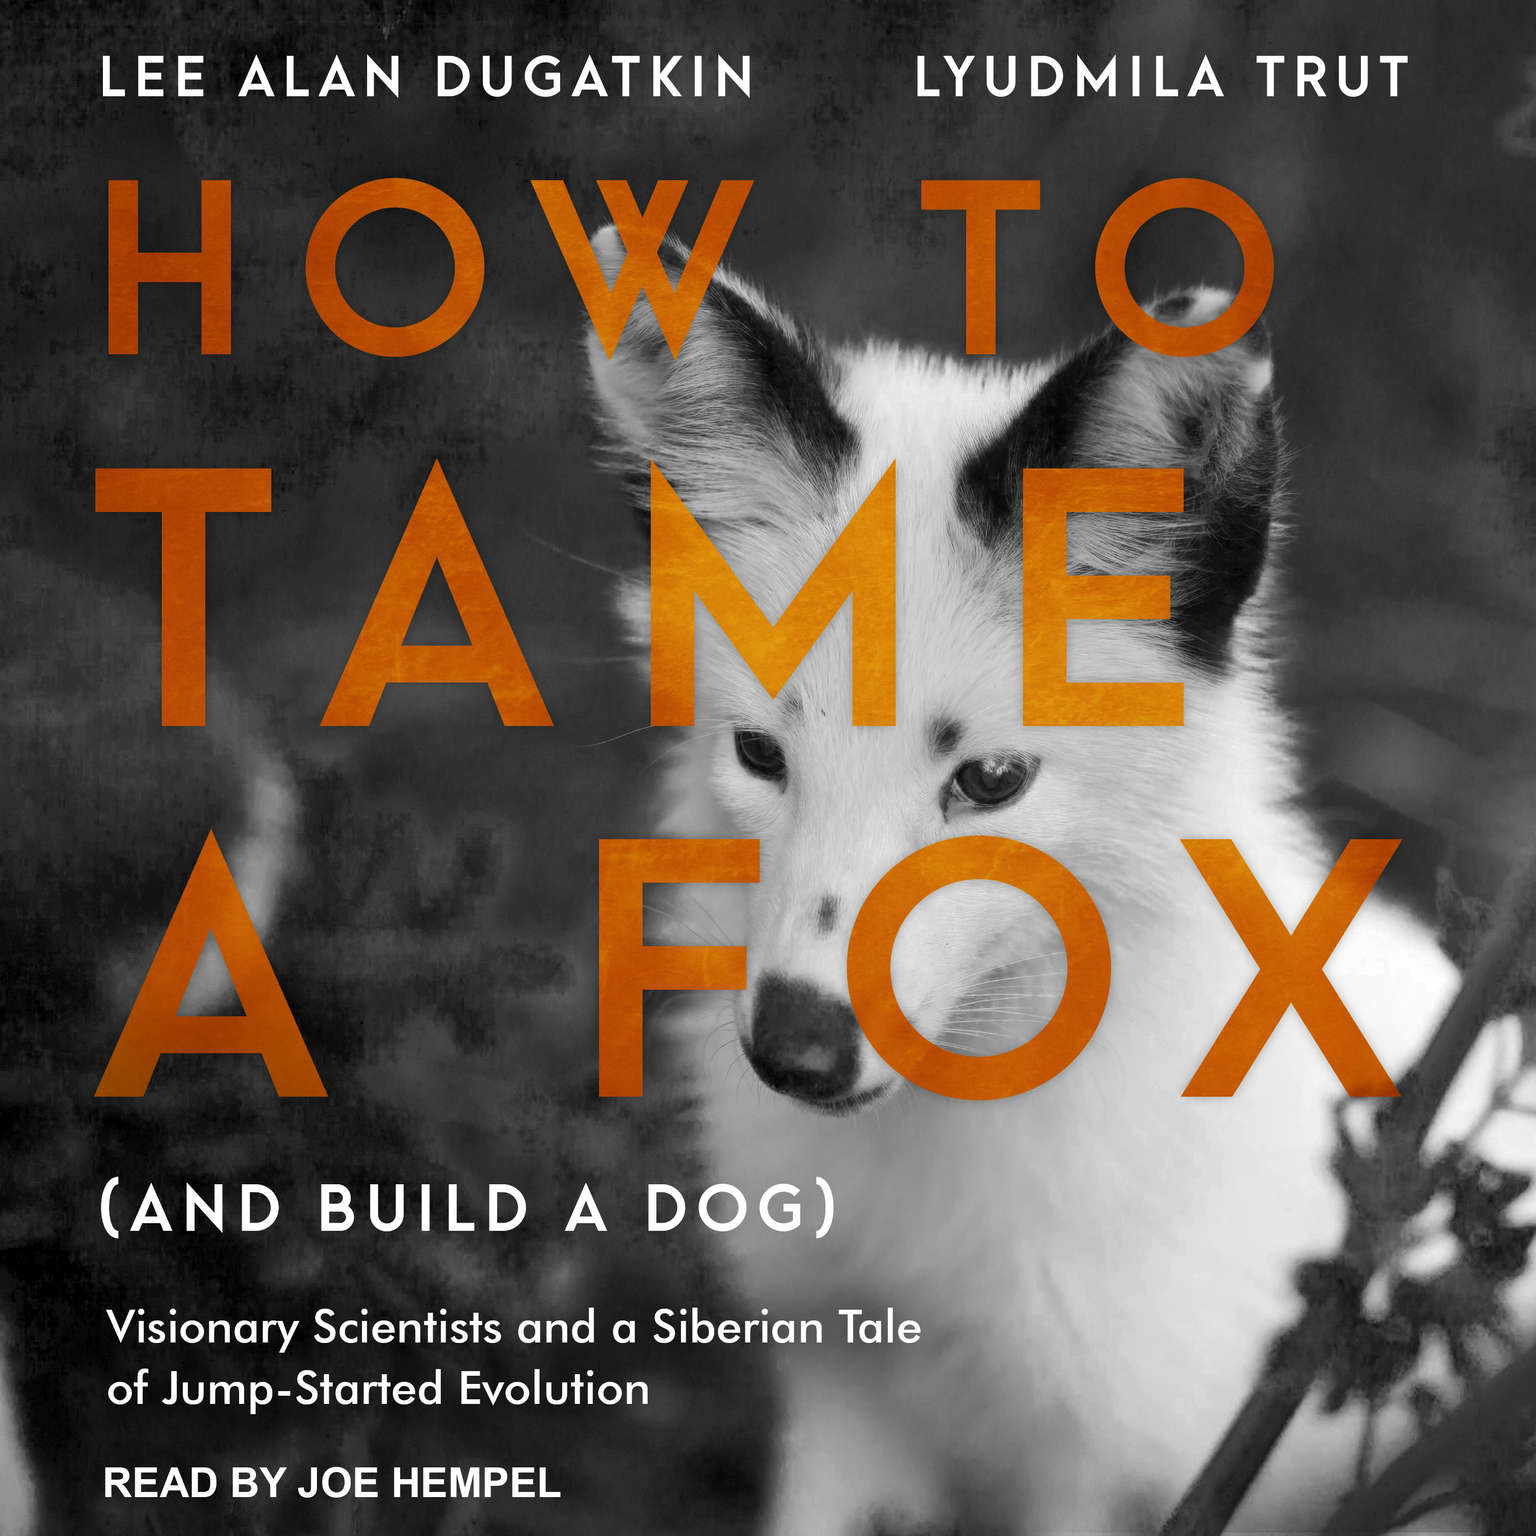 How to Tame a Fox (and Build a Dog): Visionary Scientists and a Siberian Tale of Jump-Started Evolution Audiobook, by Lee Alan Dugatkin